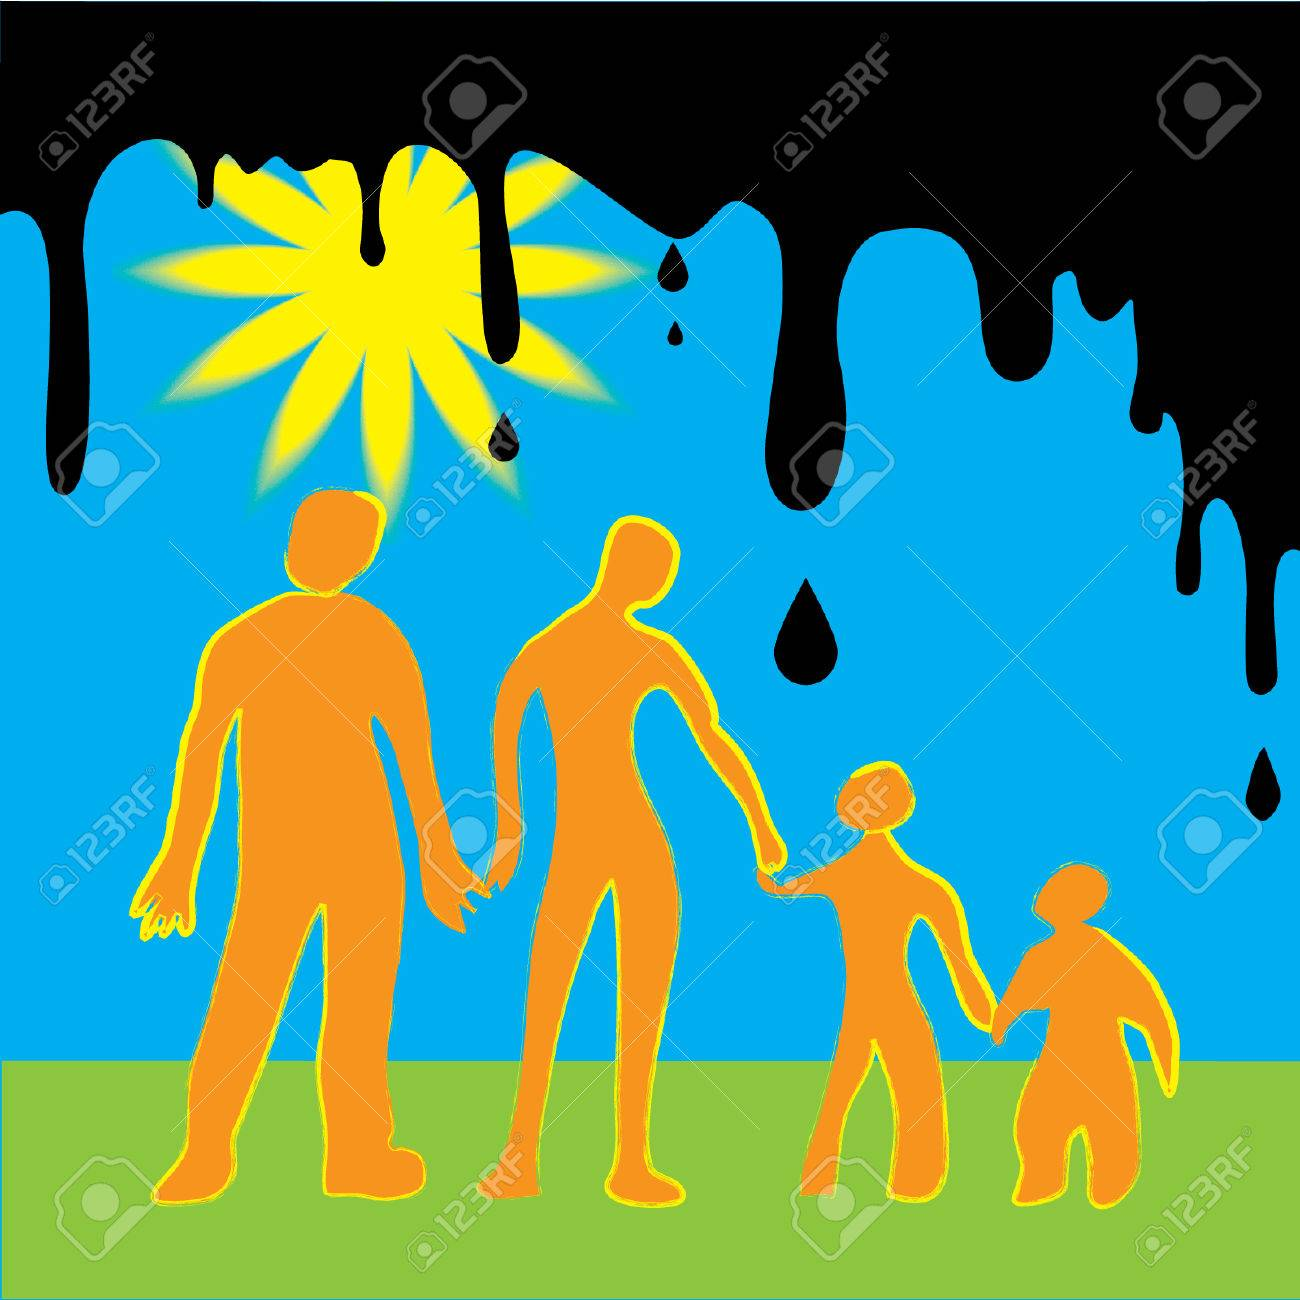 Made as kids drawing as a warning about disasters which can happened with humanity on earth. Happy family. Stock Vector - 7138417